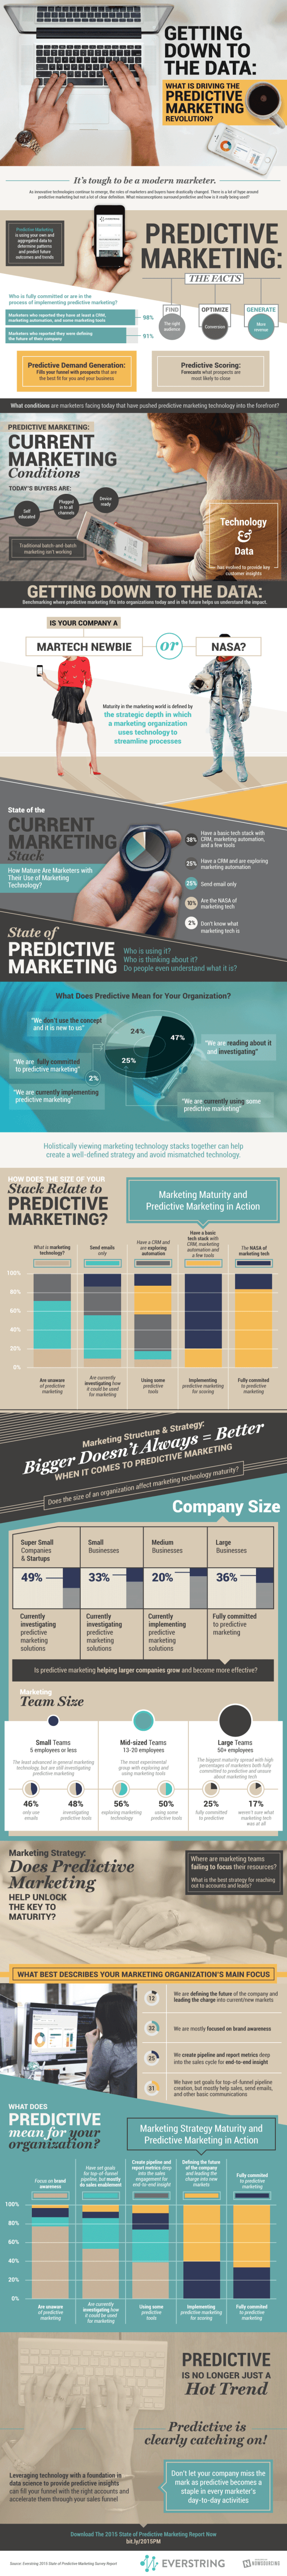 predictive-marketing-640x5748.png